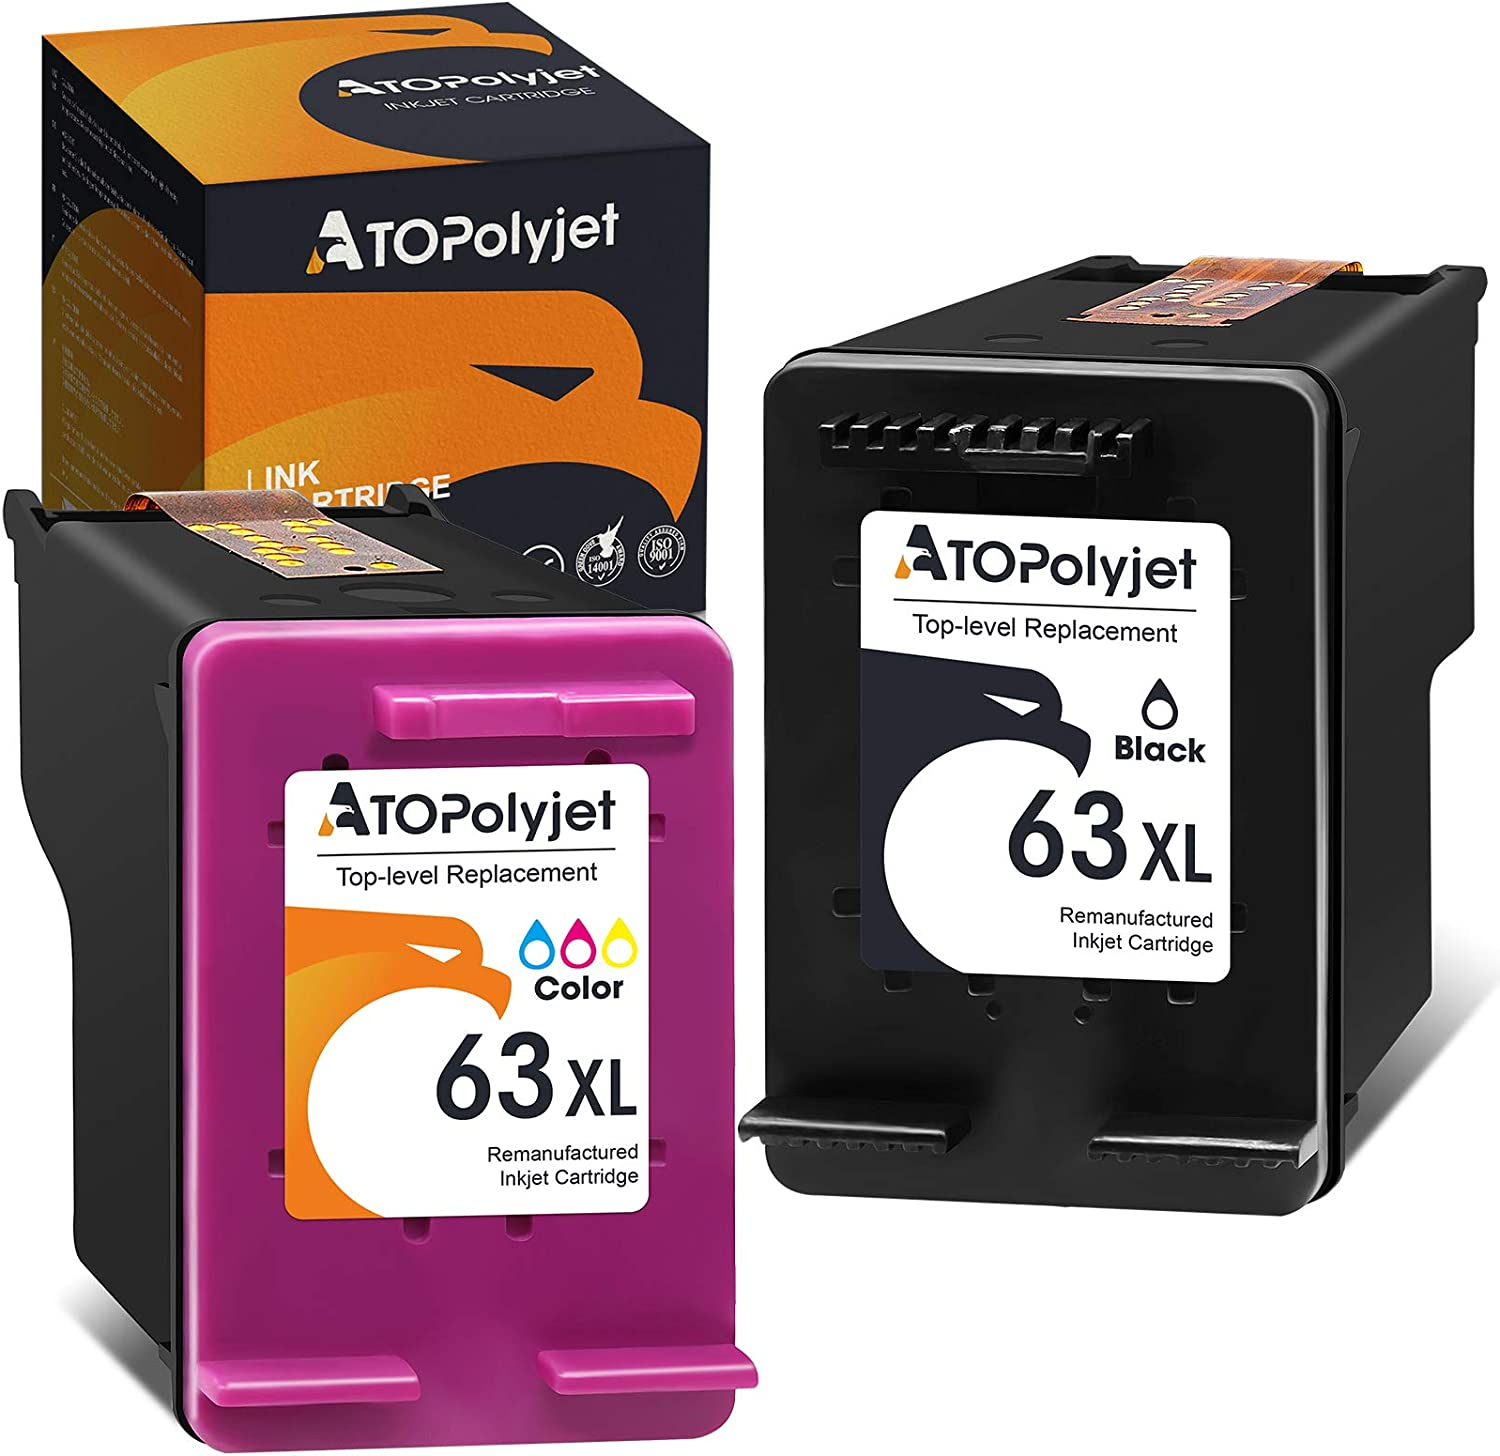 ATOPolyjet Raleigh Albuquerque Mall Mall Remanufactured Ink Cartridge for HP 63XL Replacement